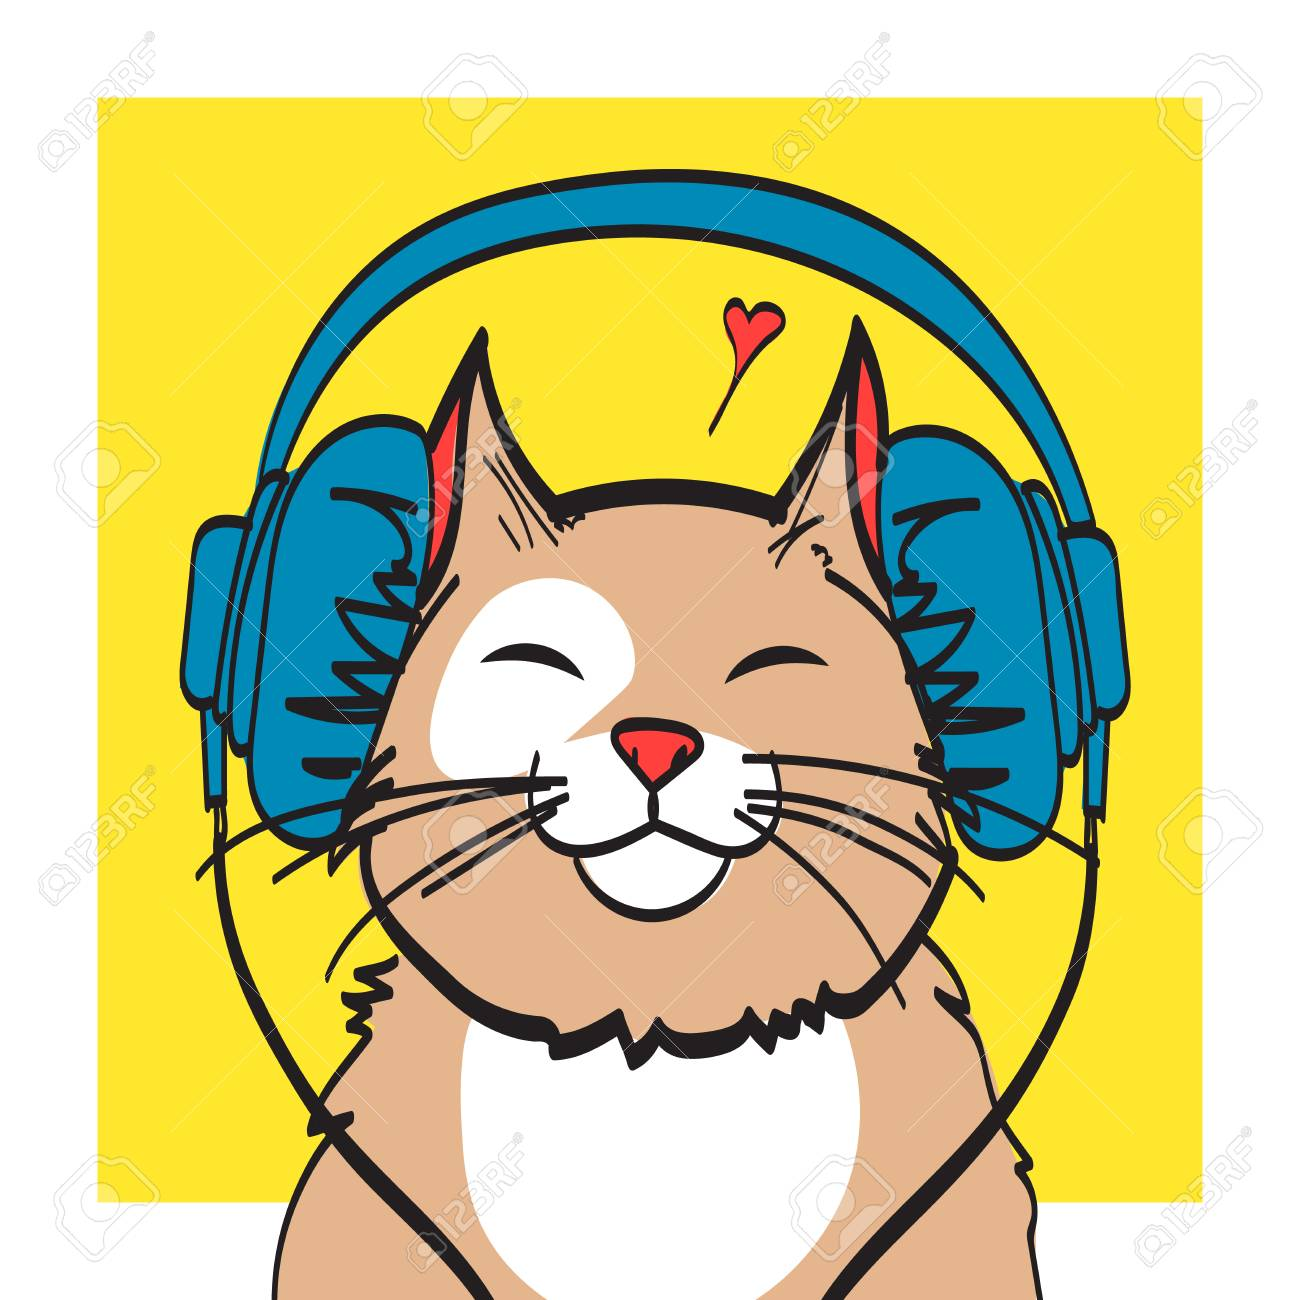 cool vector art of cat with headphone music picture eps 10 rh 123rf com cool vector art backgrounds cool vector art sites